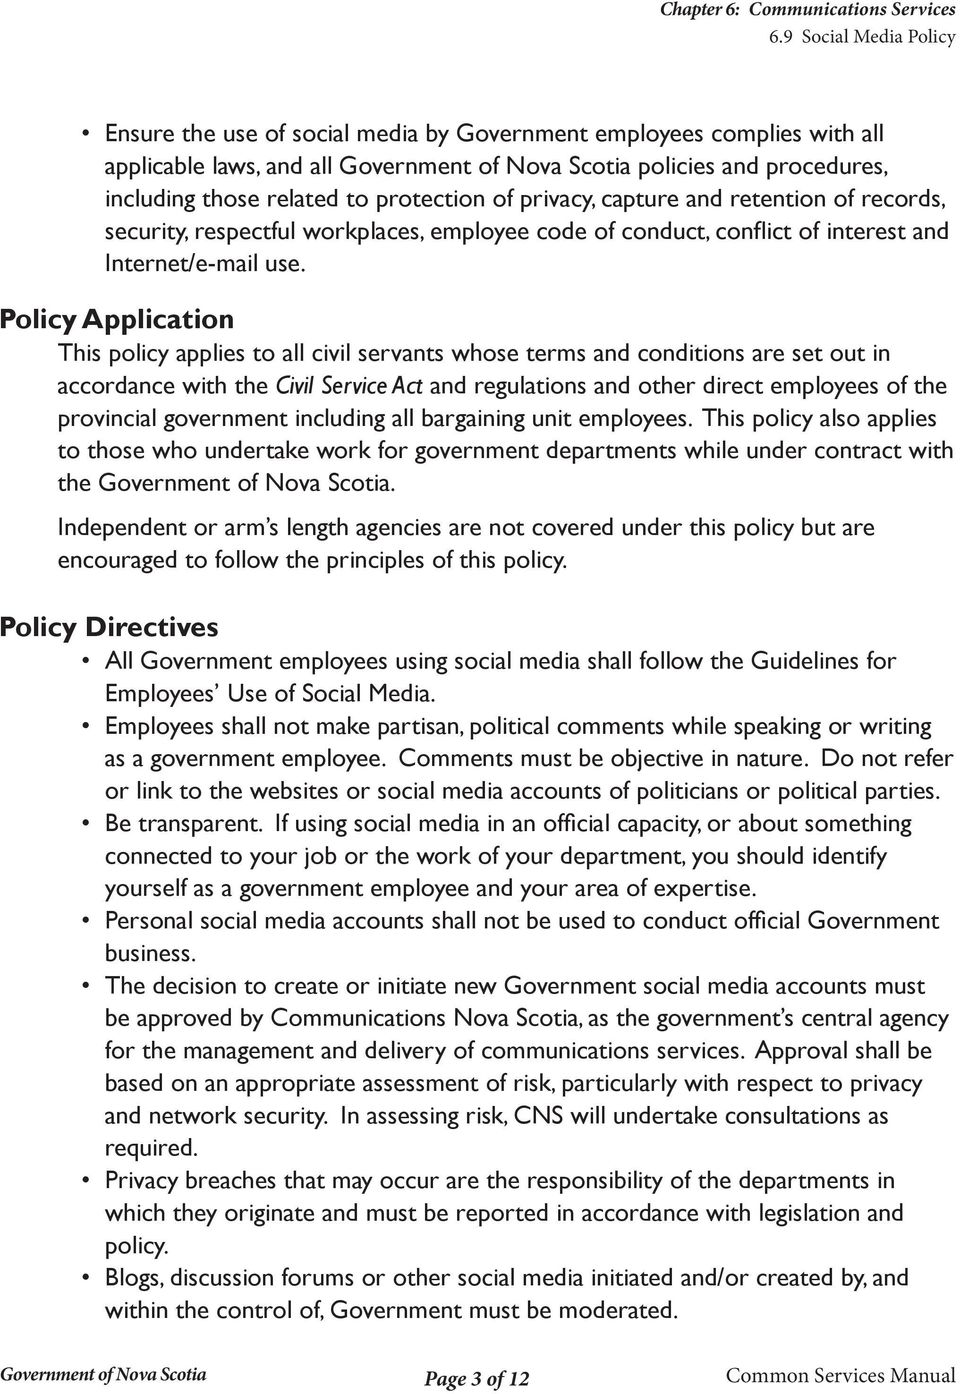 Policy Application This policy applies to all civil servants whose terms and conditions are set out in accordance with the Civil Service Act and regulations and other direct employees of the